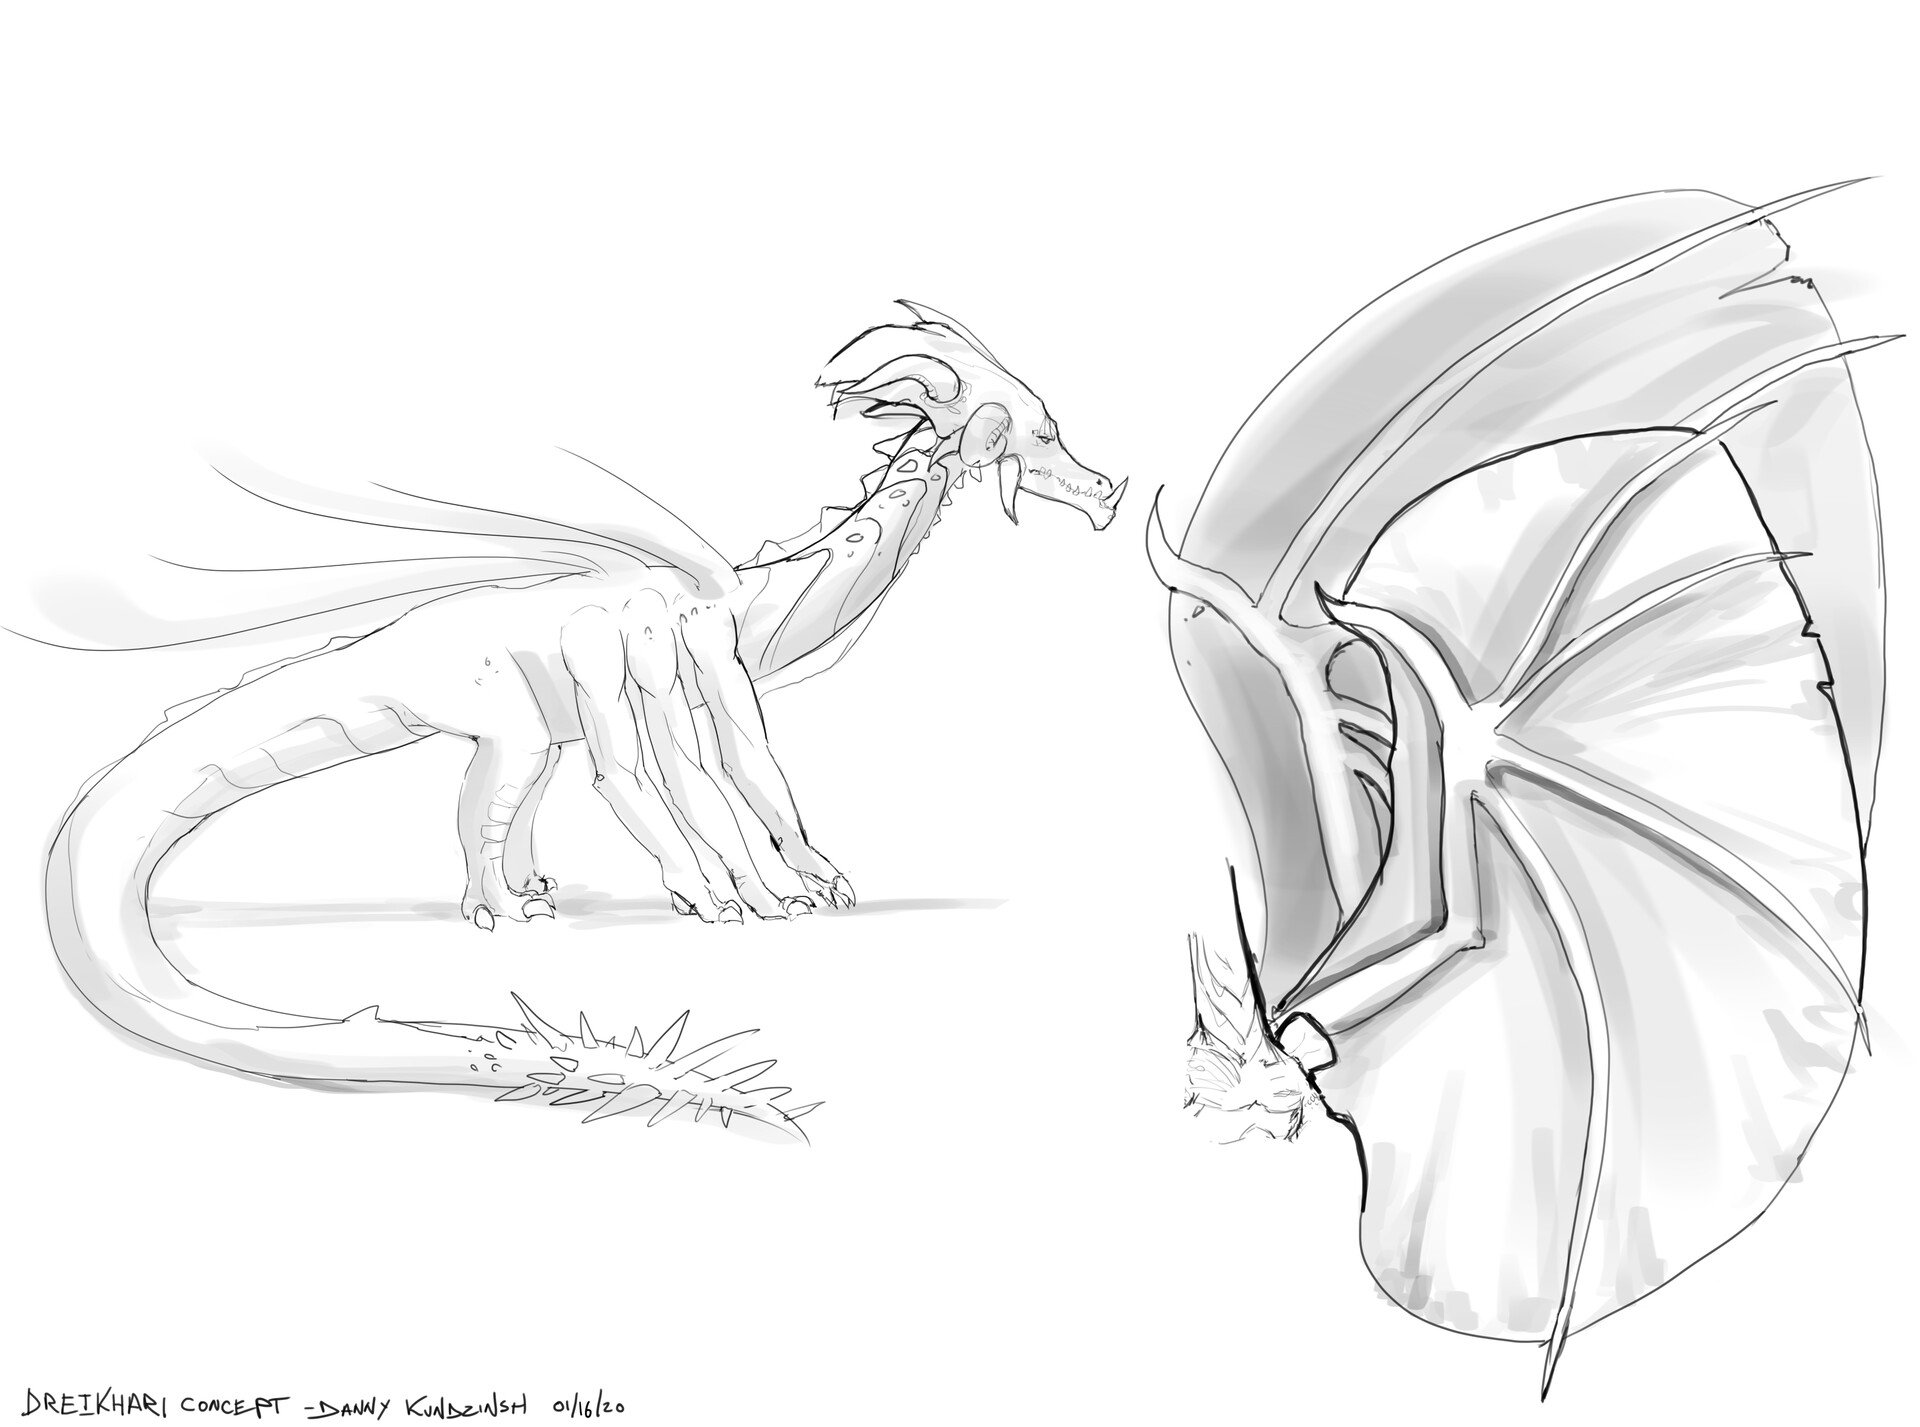 Side view and wing studies